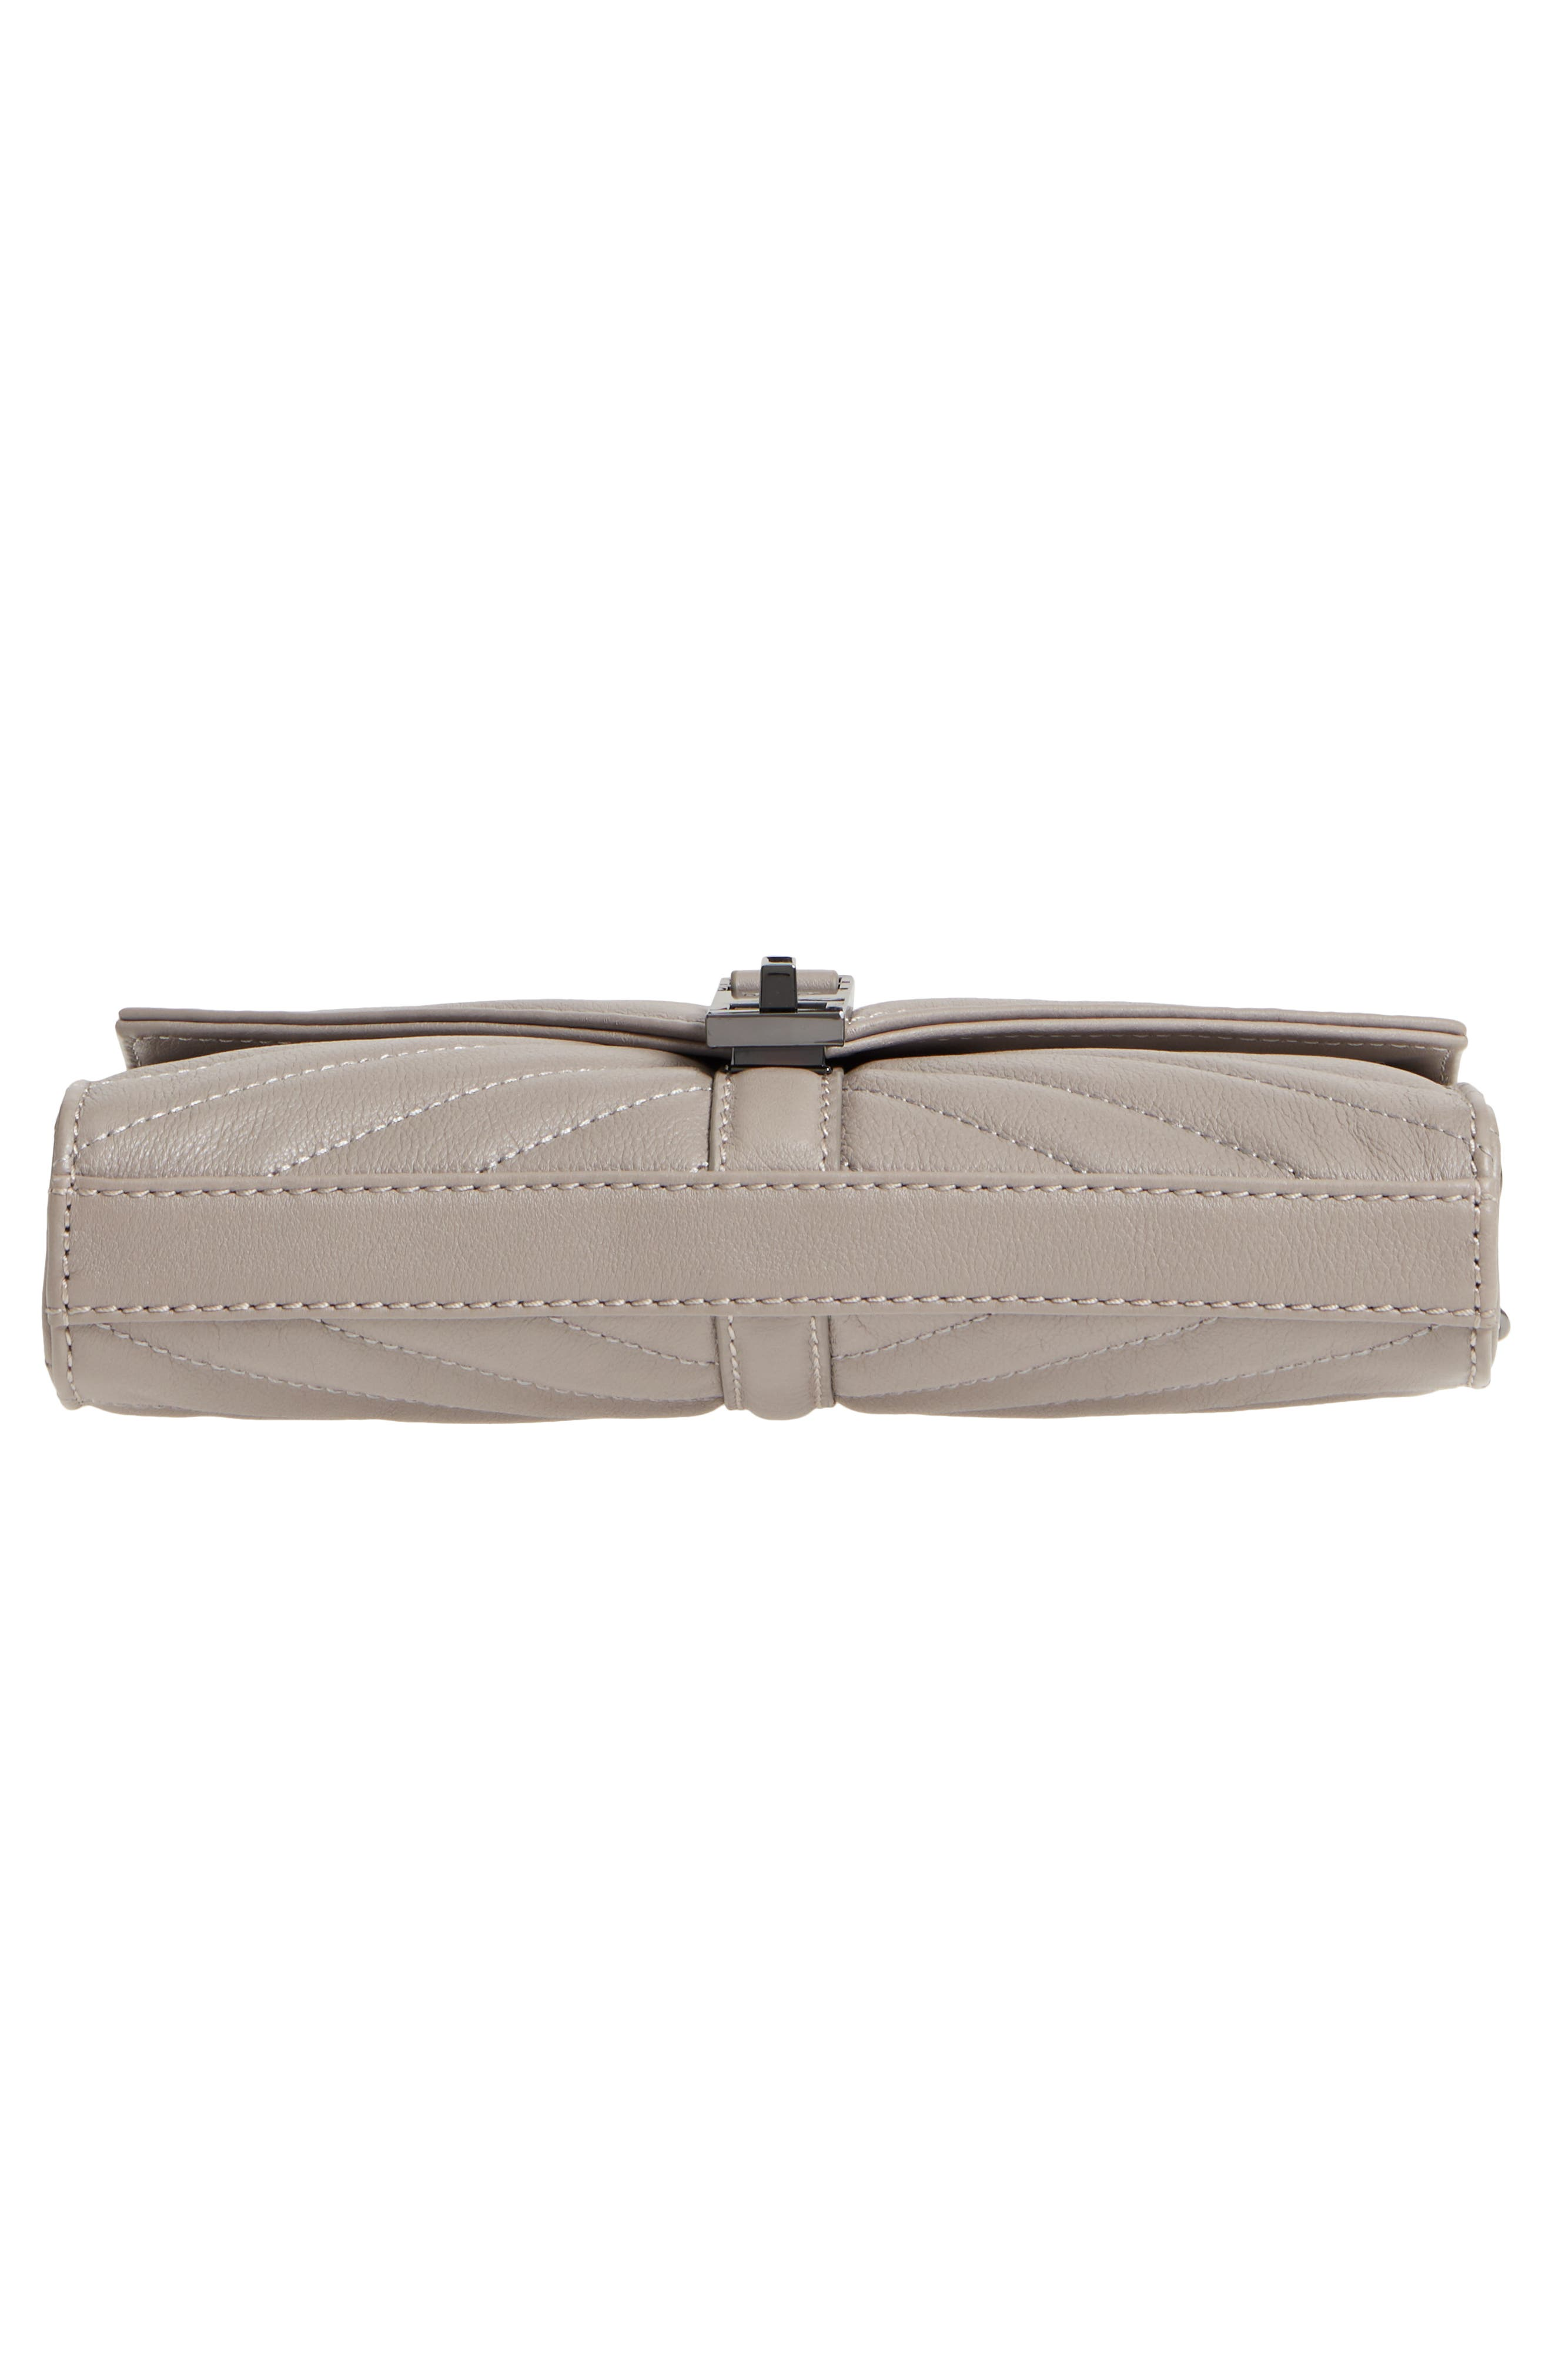 Dakota Quilted Leather Clutch,                             Alternate thumbnail 6, color,                             020